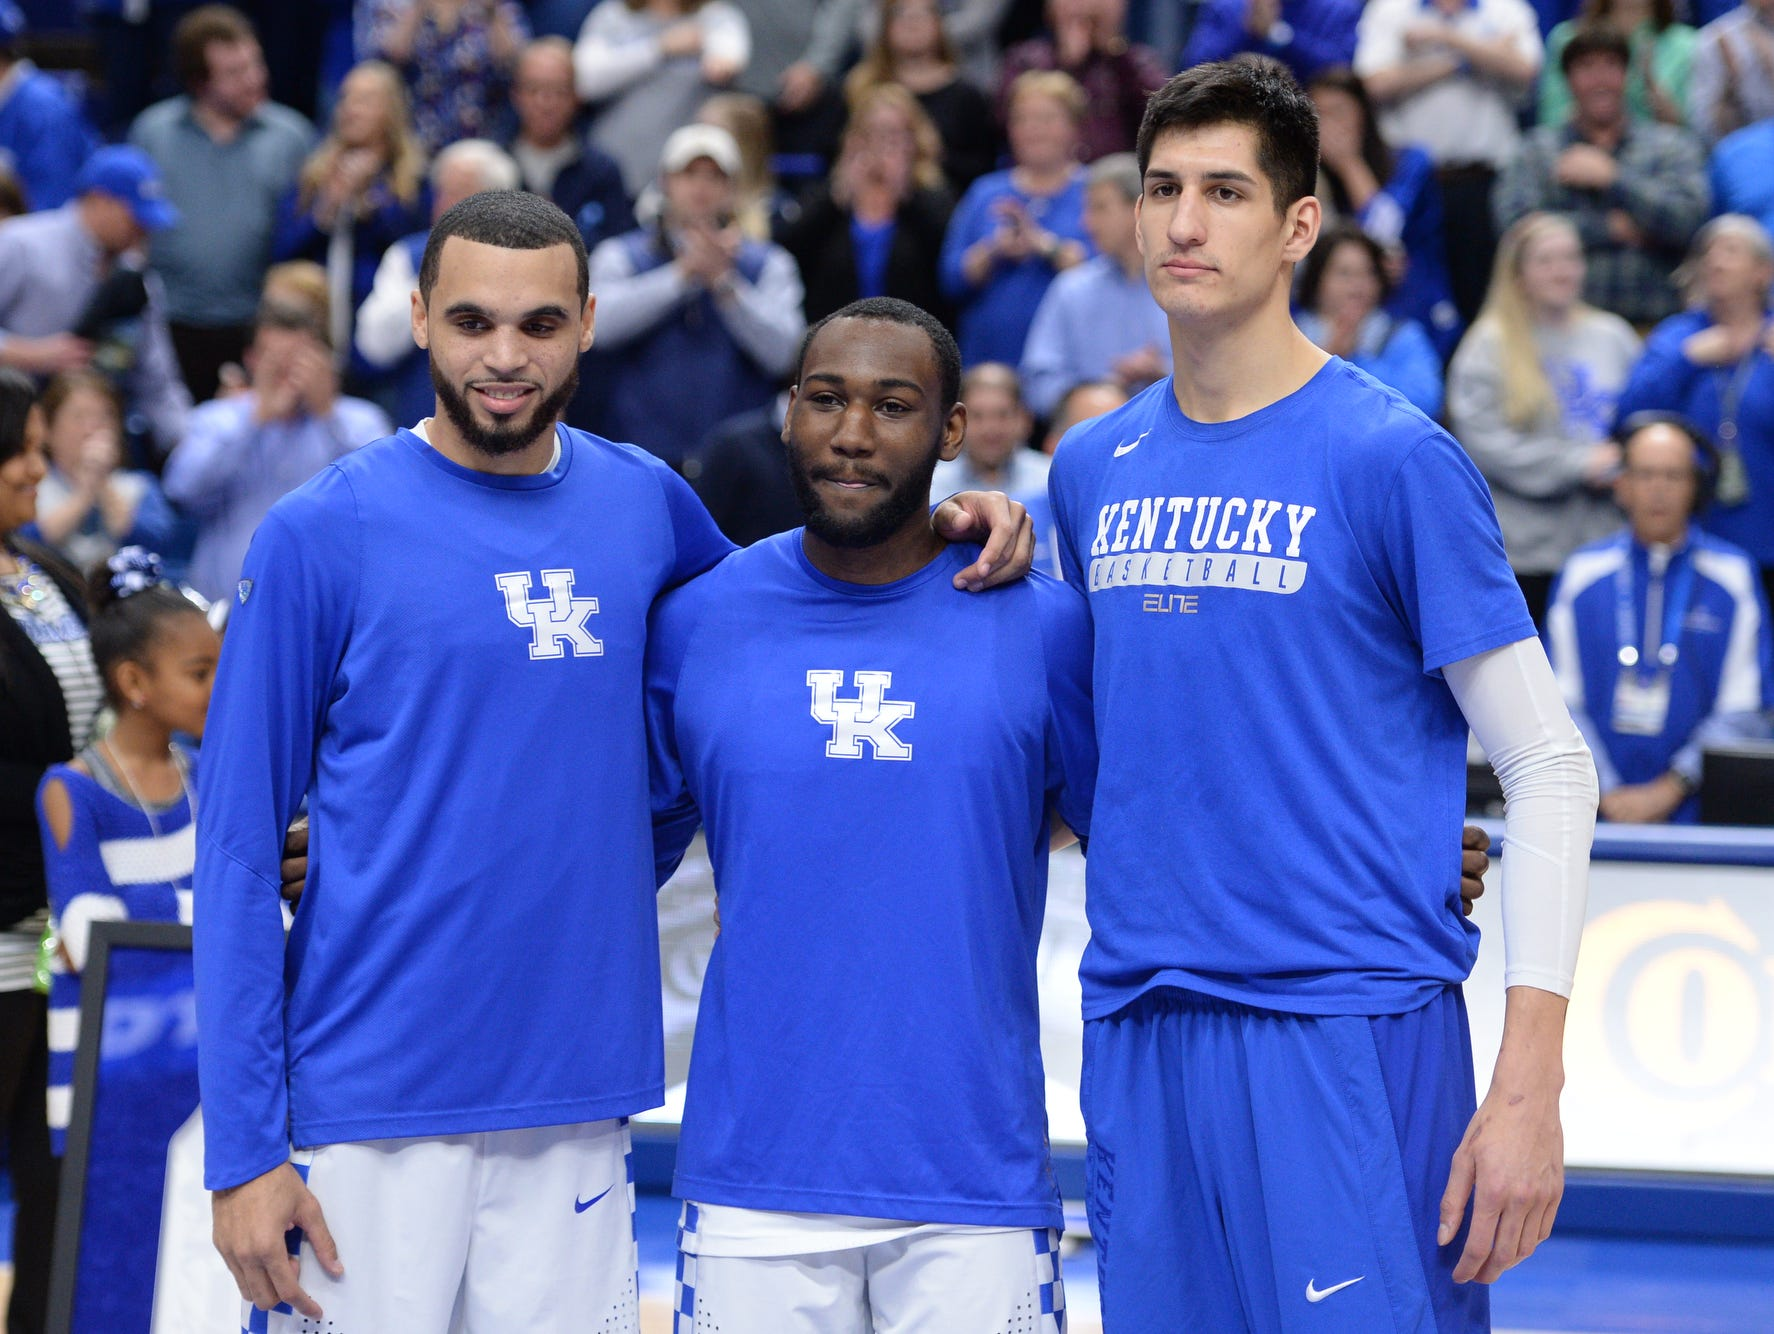 UK seniors Mychal Mulder, Dominique Hawkins, and Derek Willis are recognized before to the University of Kentucky basketball game against Vanderbilt University at Rupp Arena in Lexington, KY on Tuesday, February 28, 2017.